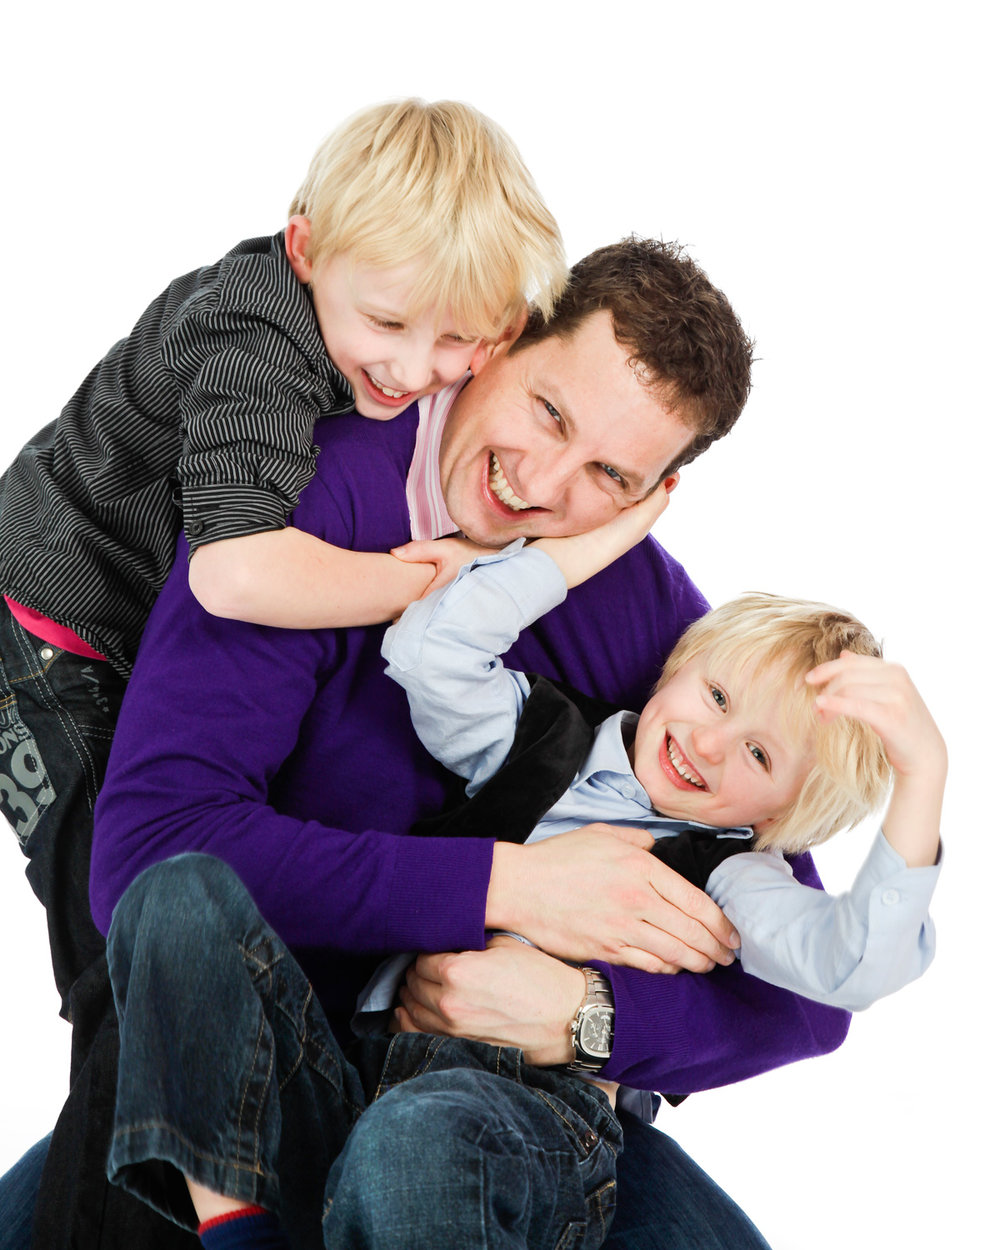 Family_Children_Portrait_Photographer_Newbury_Berkshire_047.jpg